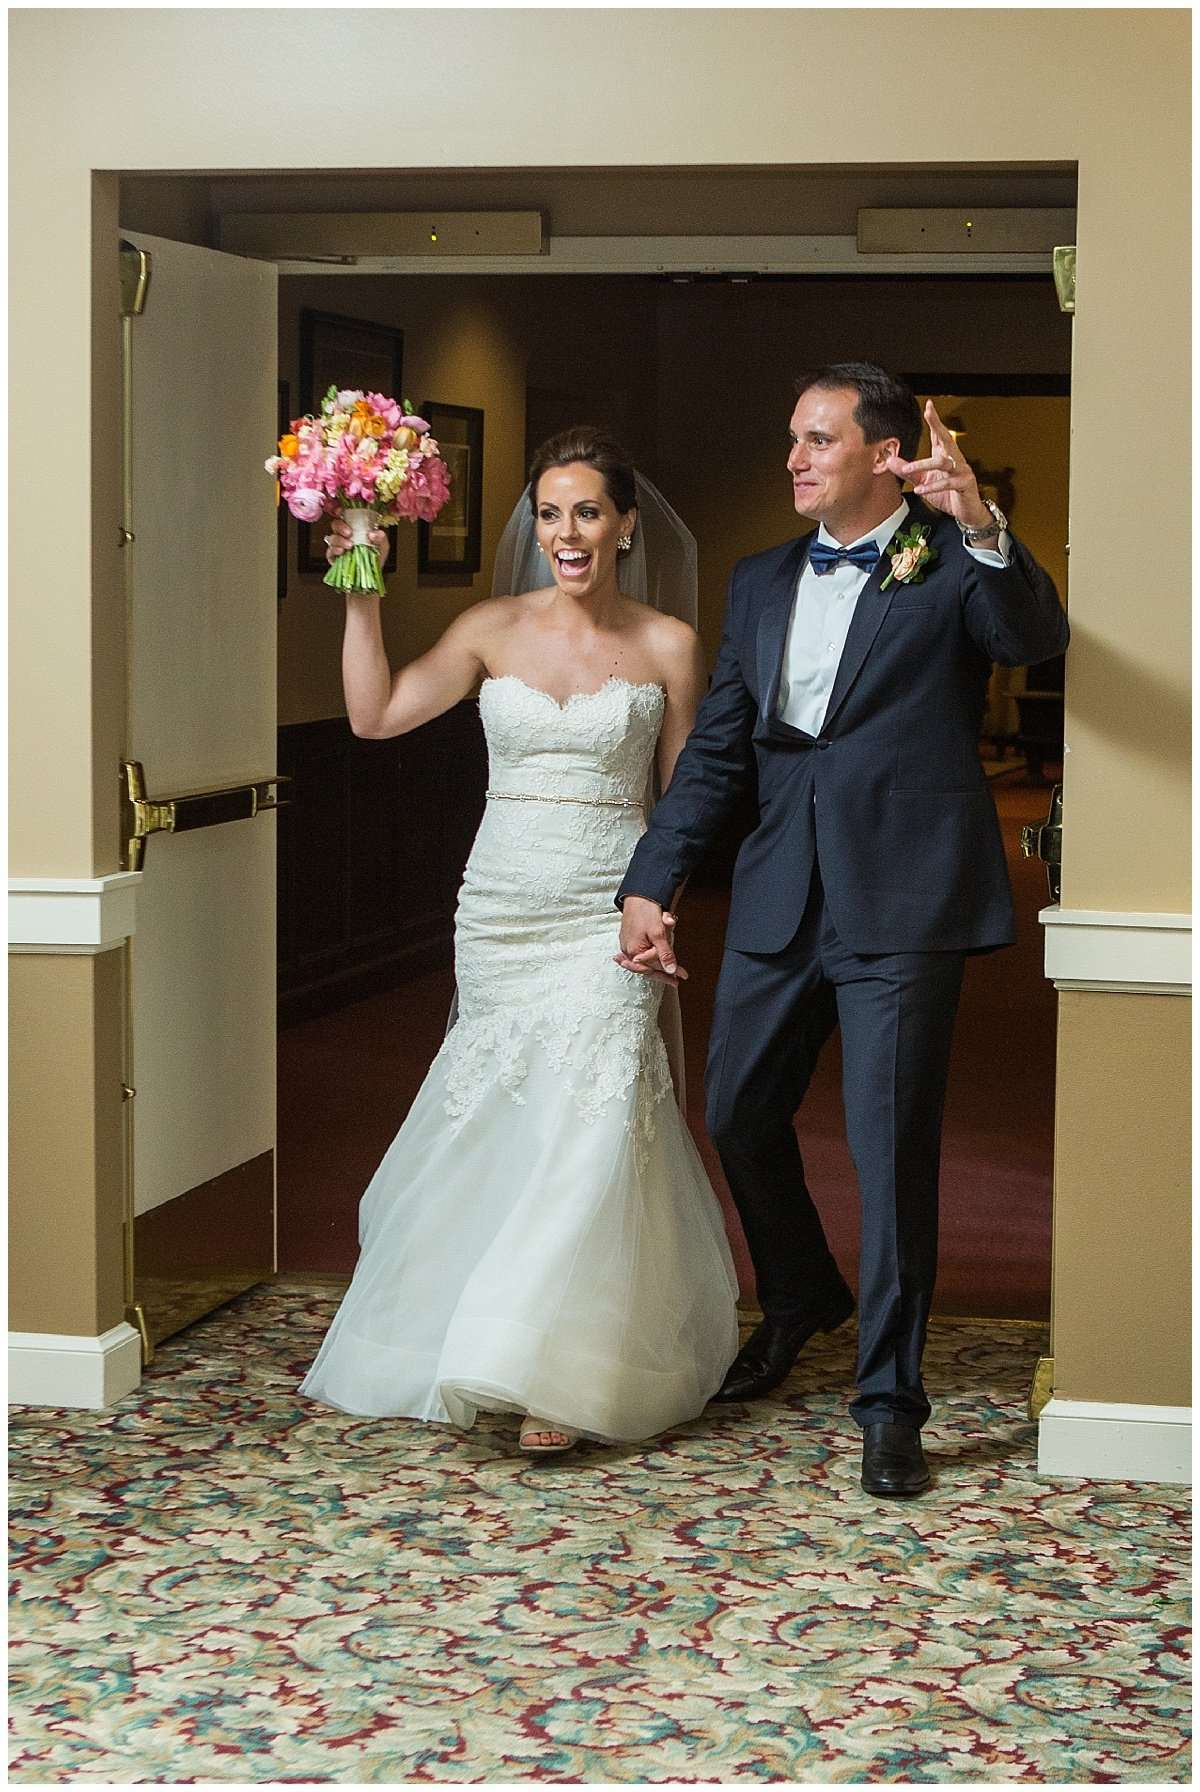 Kim & Lee | A Summer Wedding at Brookside Country Club 172